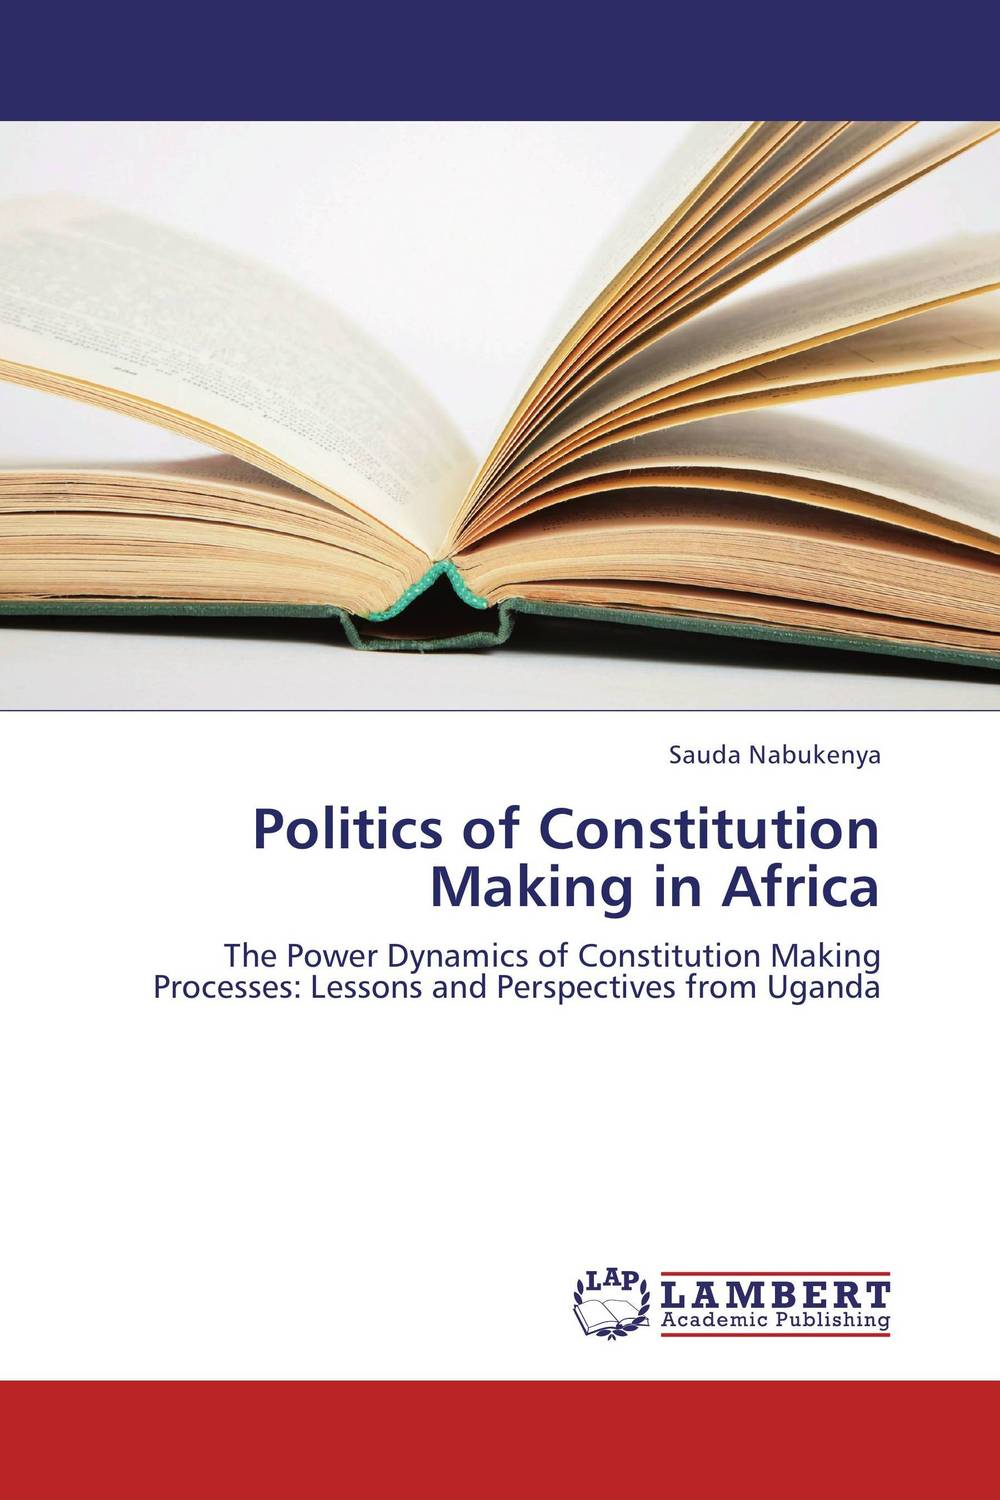 Politics of Constitution Making in Africa michael wolfe the conversion of henri iv – politics power